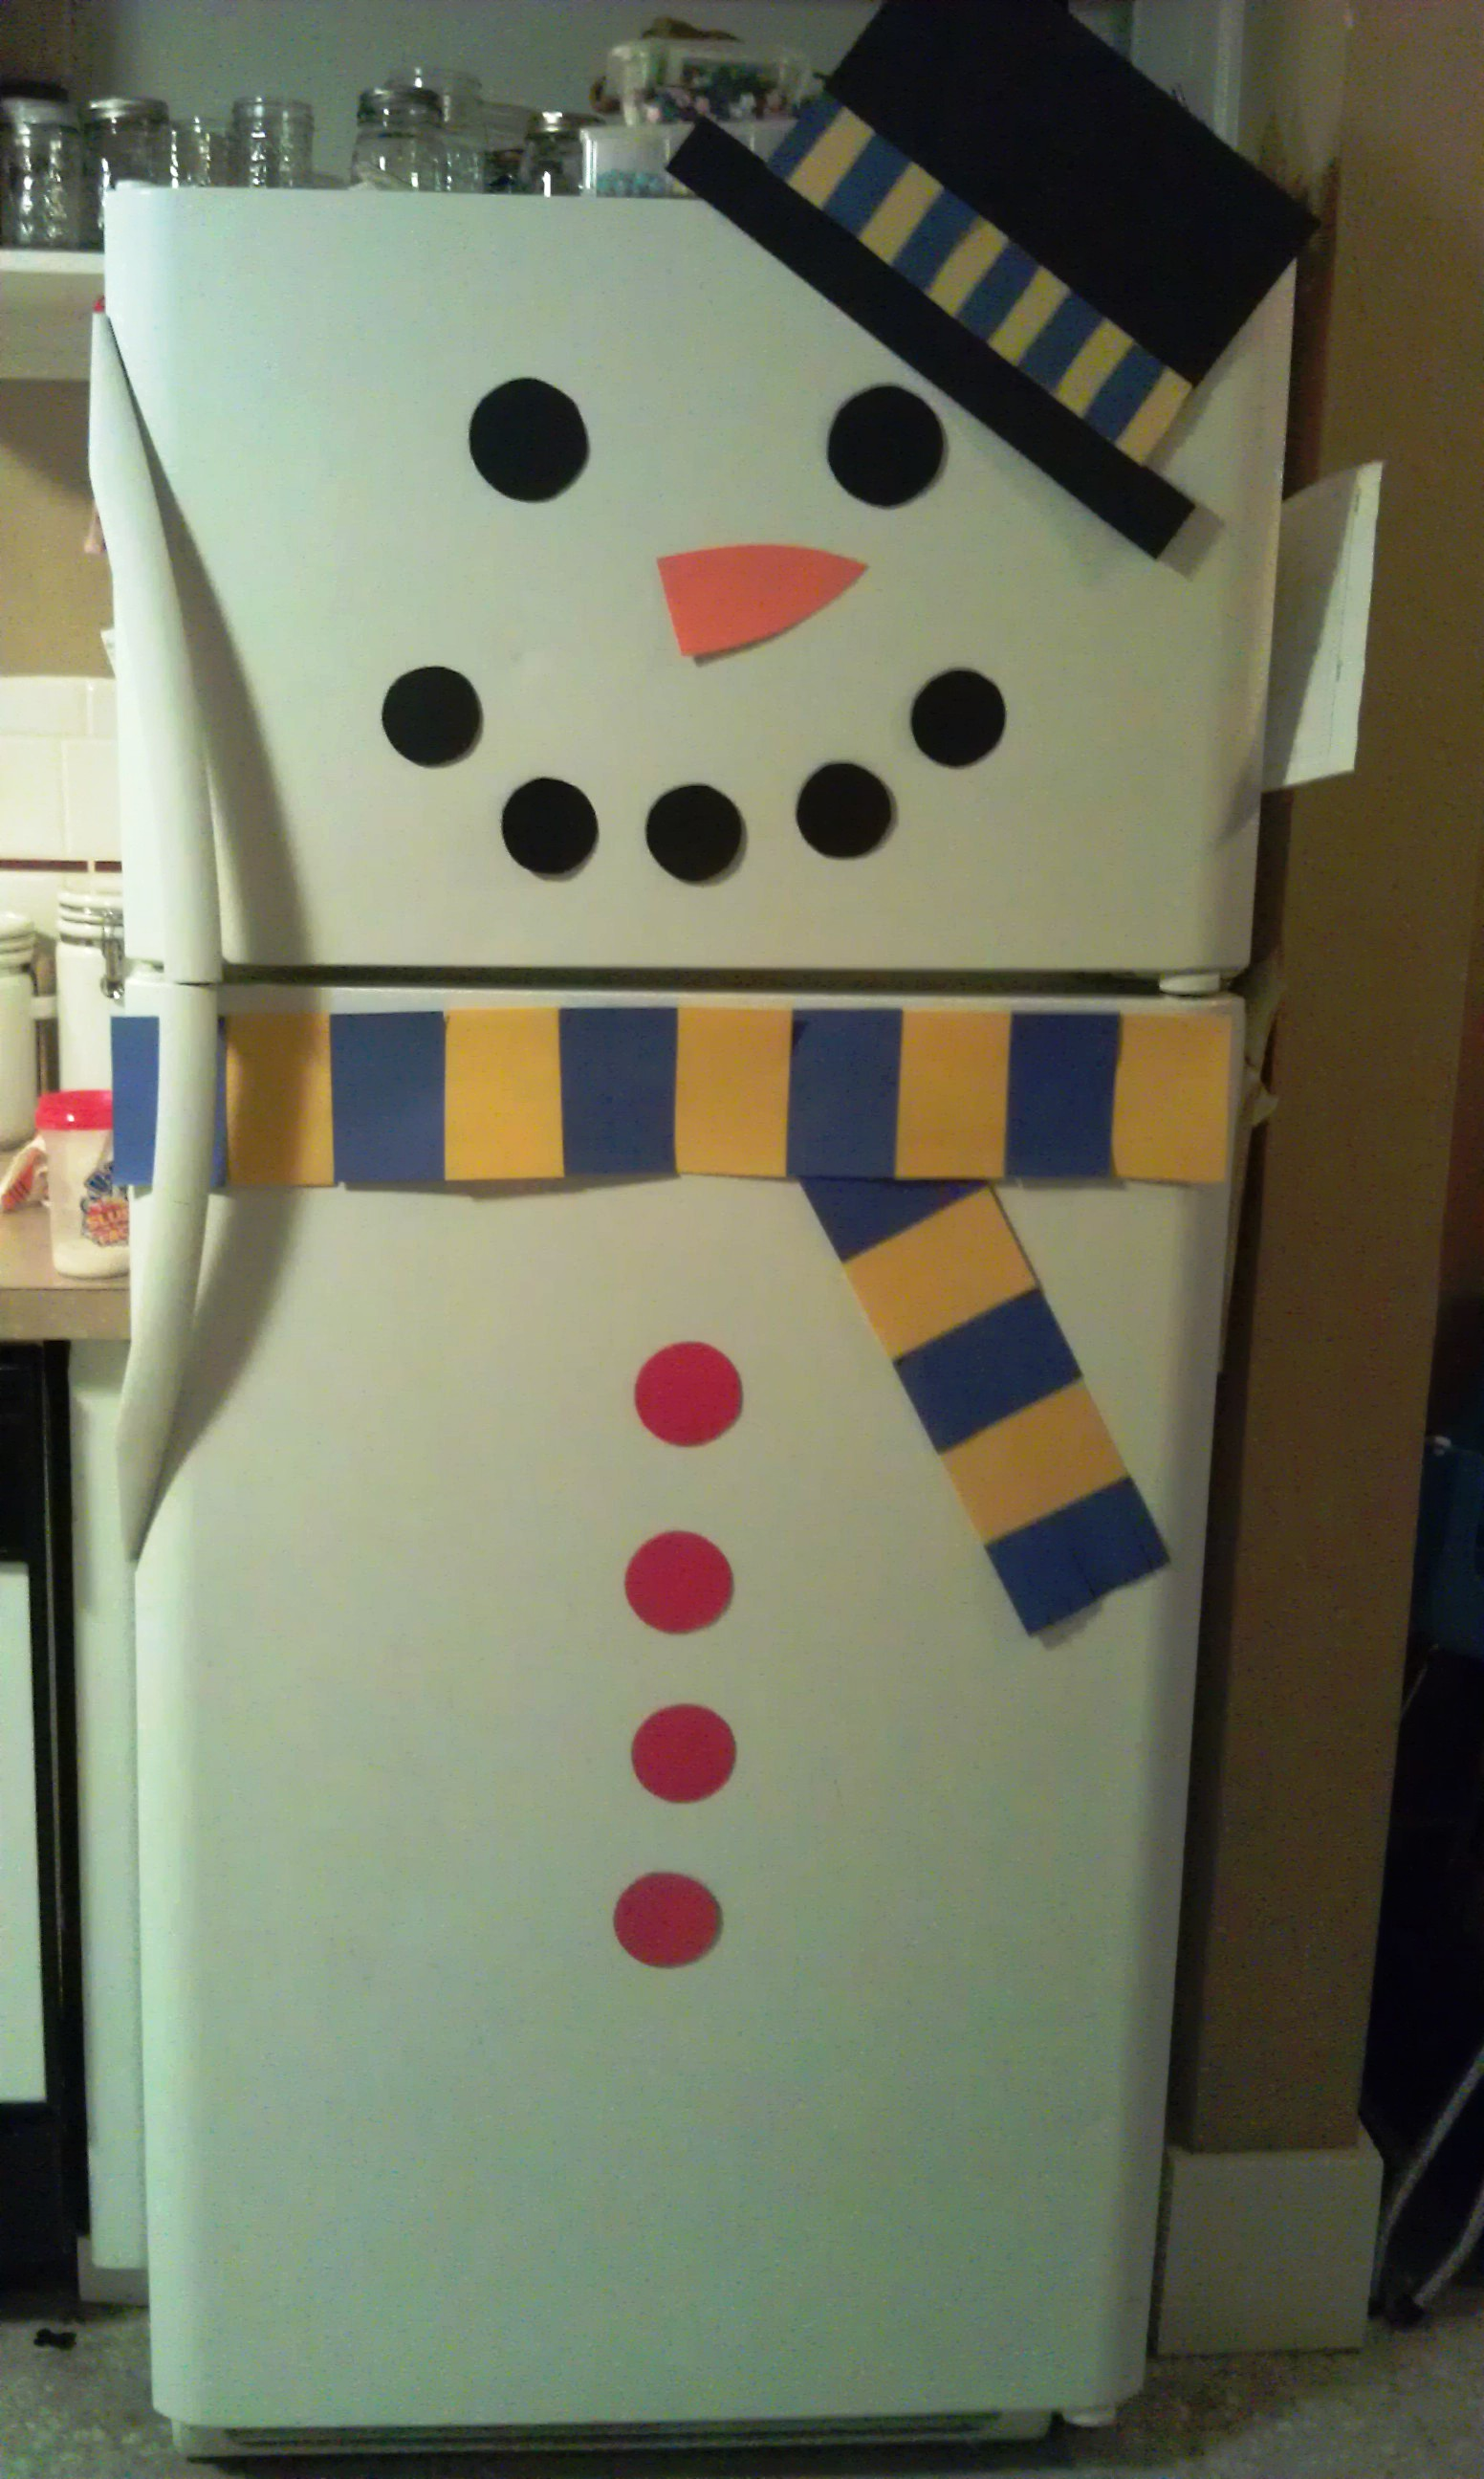 Decorate Refrigerator As A Snowman